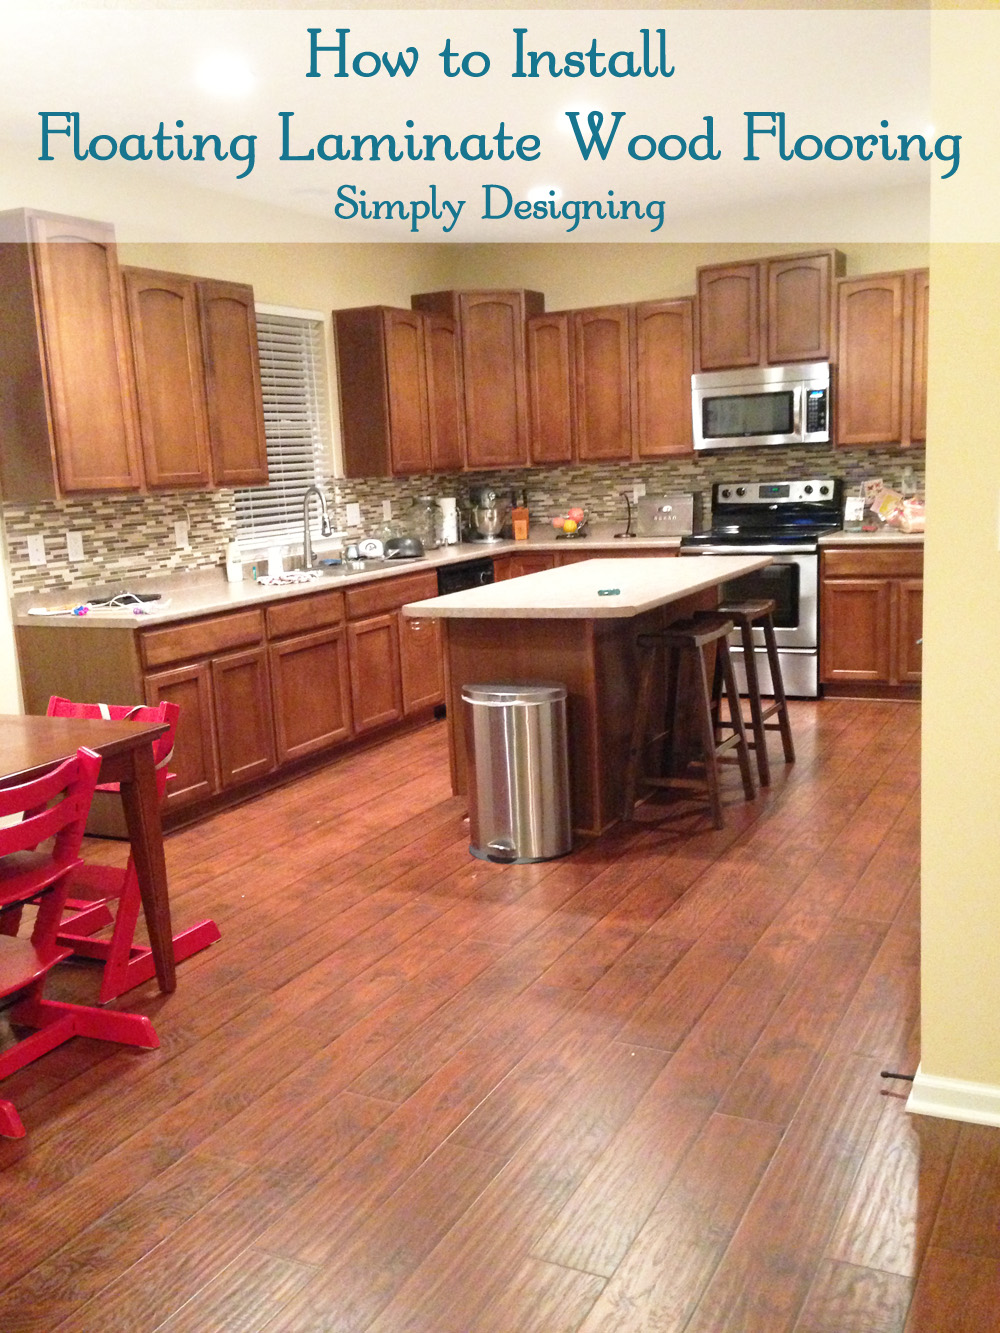 Laminate Flooring In A Kitchen laminate flooring for bathroom and kitchen How To Install Floating Laminate Wood Flooring Diy Homeimprovement Flooring Simply